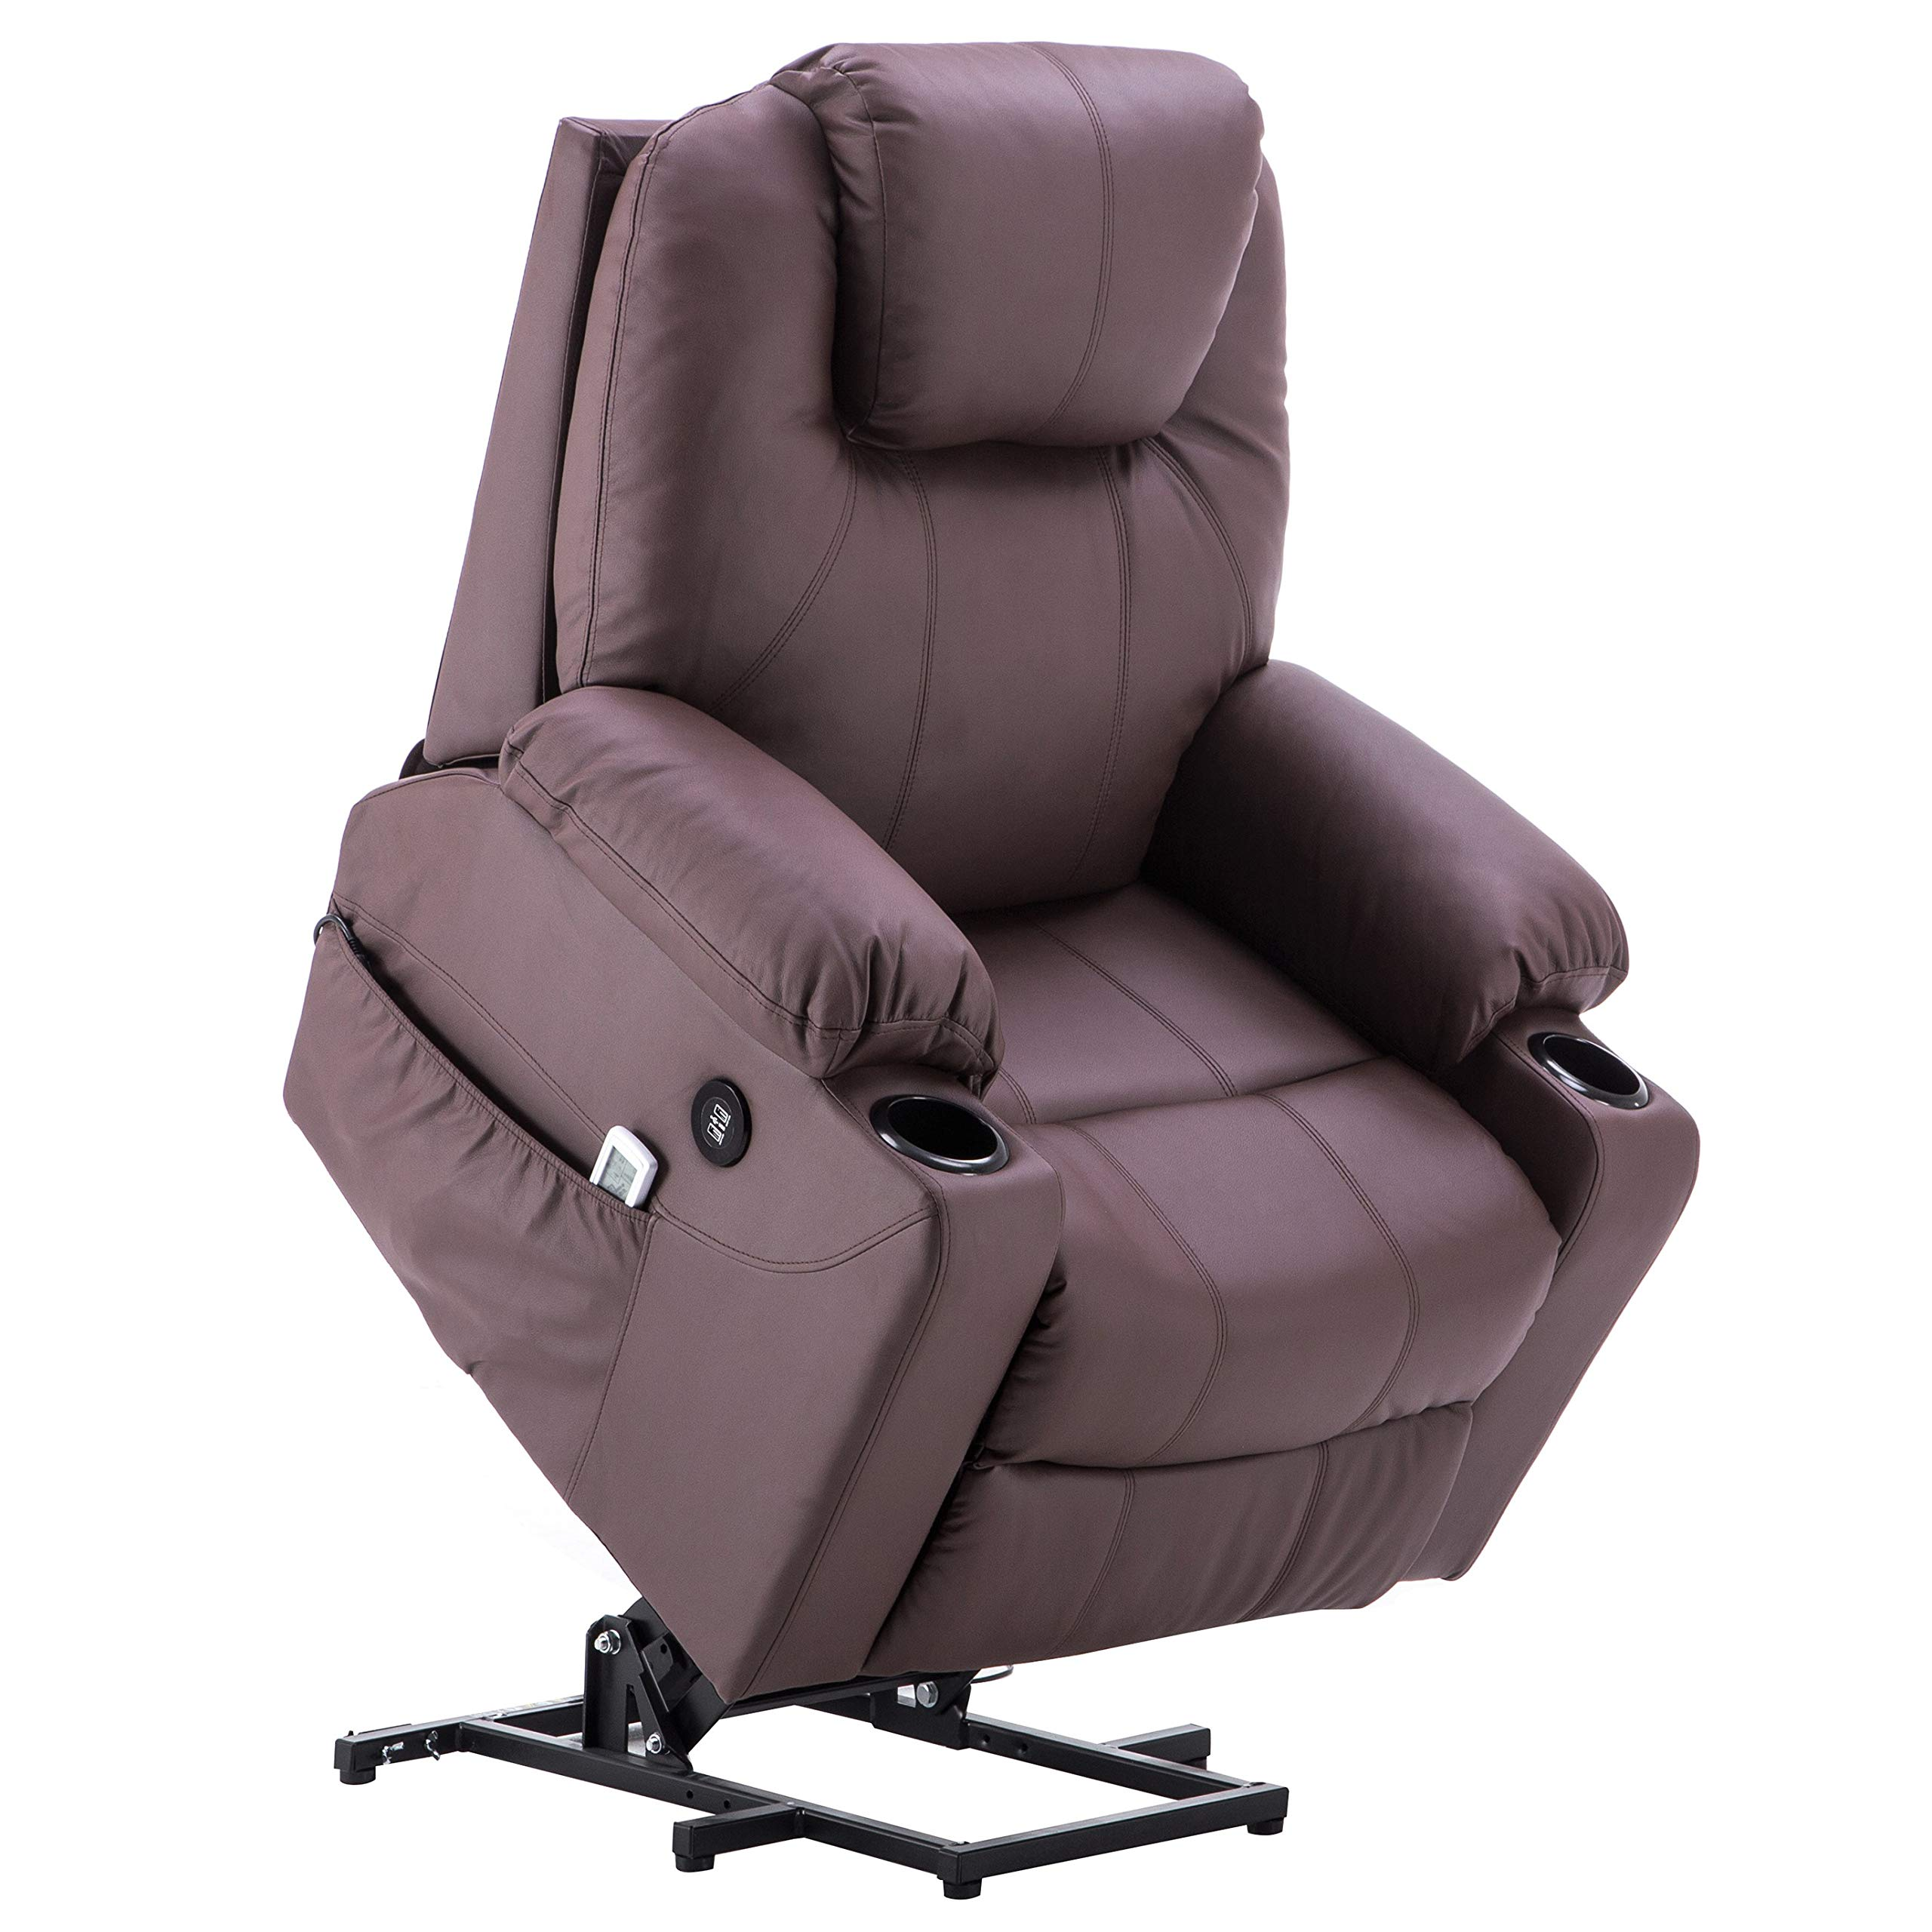 Mcombo Electric Power Lift Massage Sofa Recliner Heated Chair Lounge w/Remote Control USB Charging Ports, 7045 (Brown)